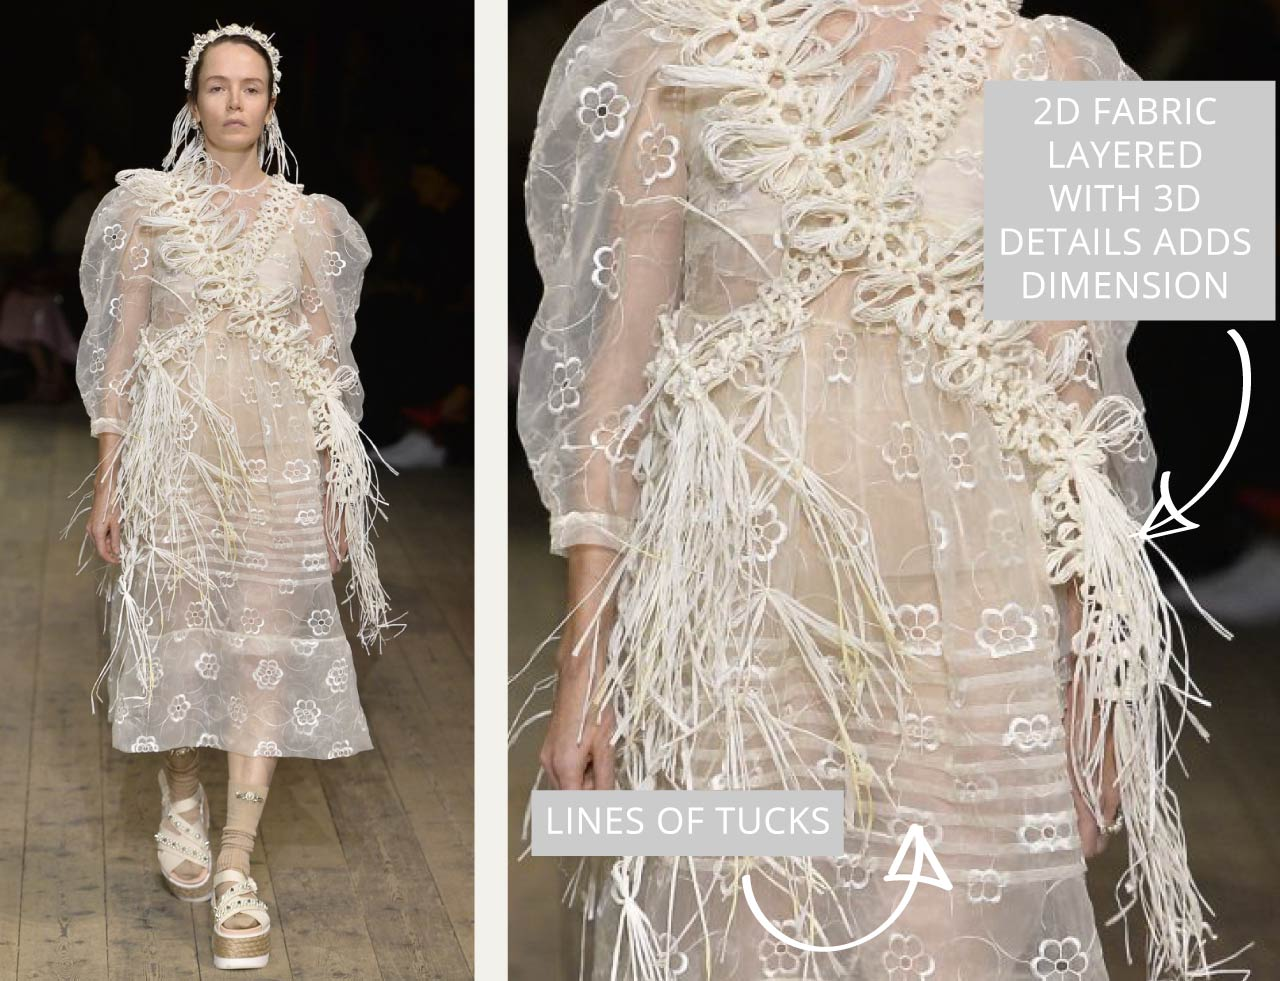 Translucent Layers at Simone Rocha | The Cutting Class. 2D fabric layered with 3D details has dimension.